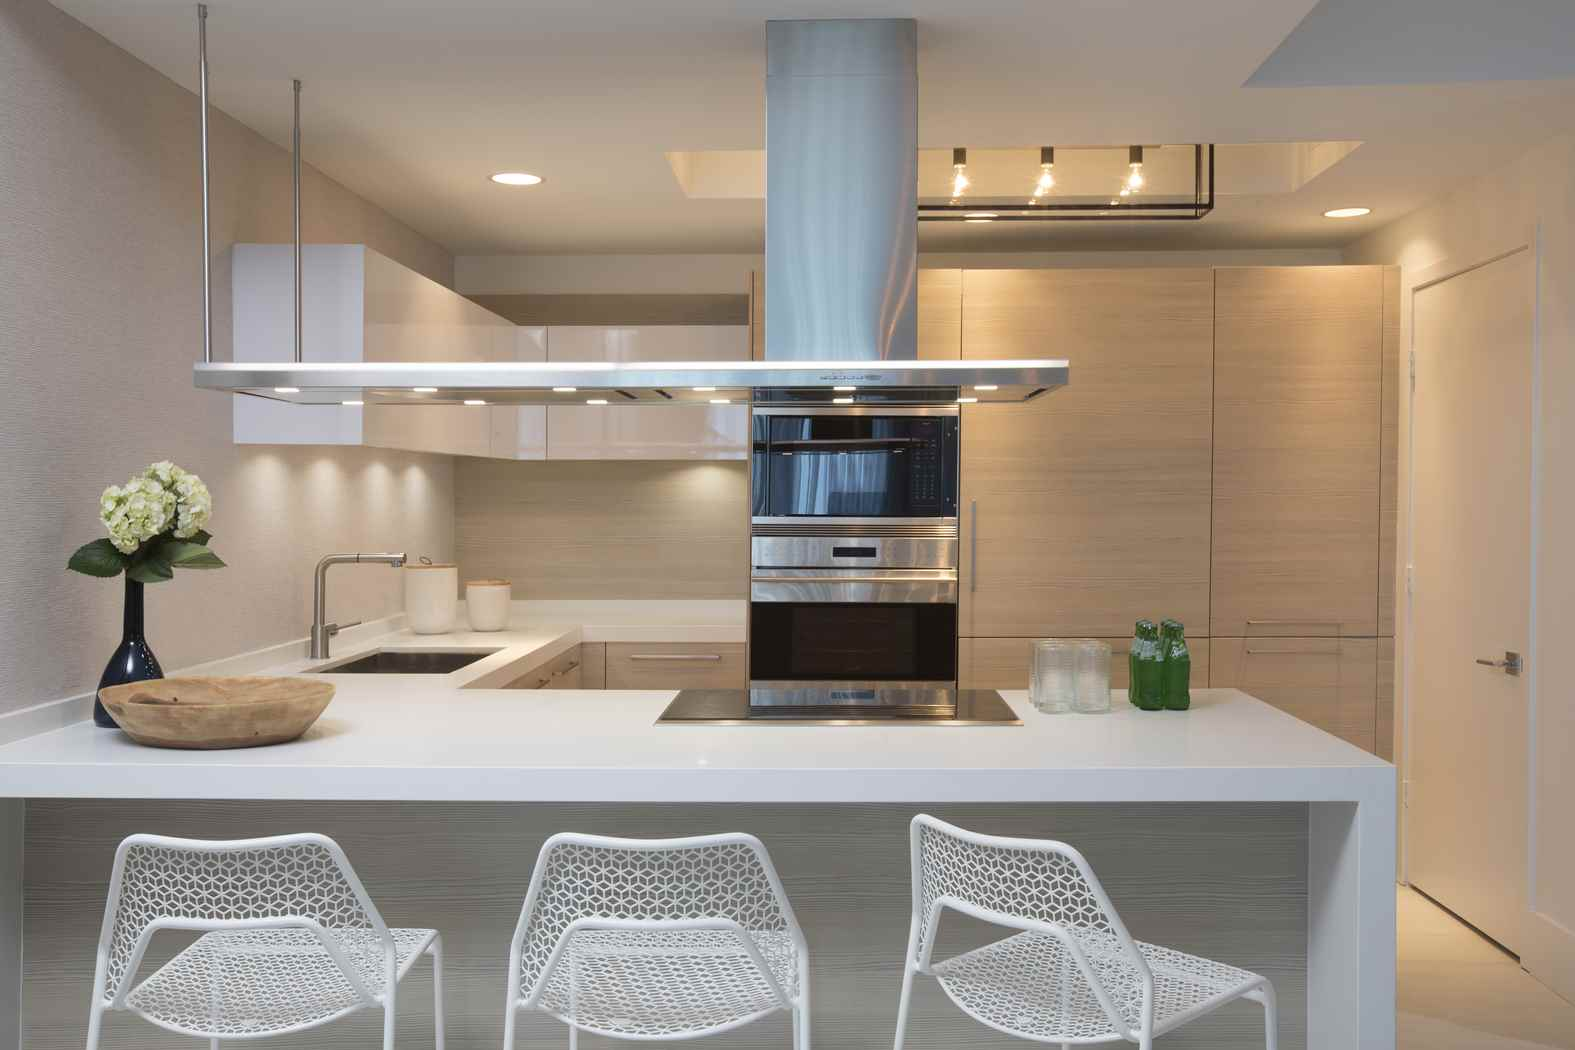 Residential interior design project in miami florida